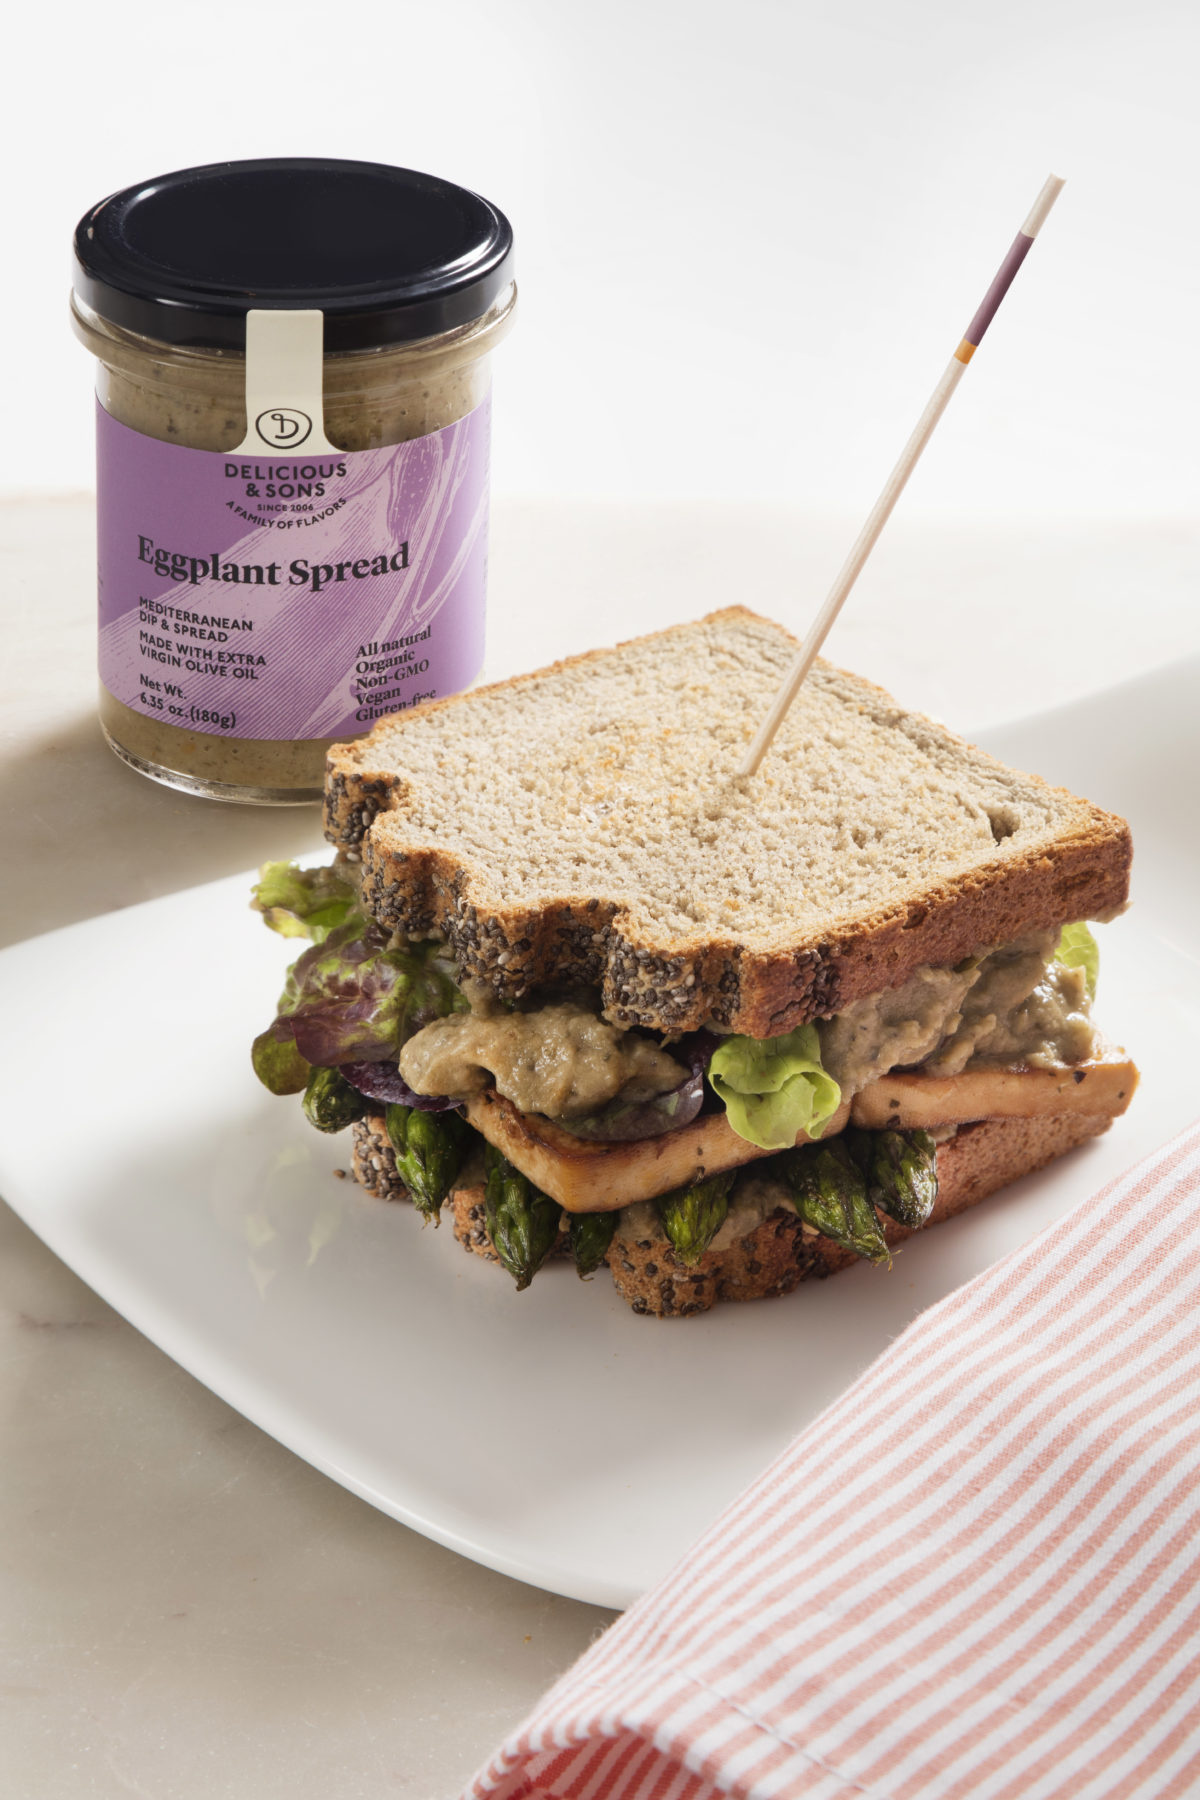 Vegan Sandwich with Eggplant Spread by Míriam Fabà — Delicious & Sons